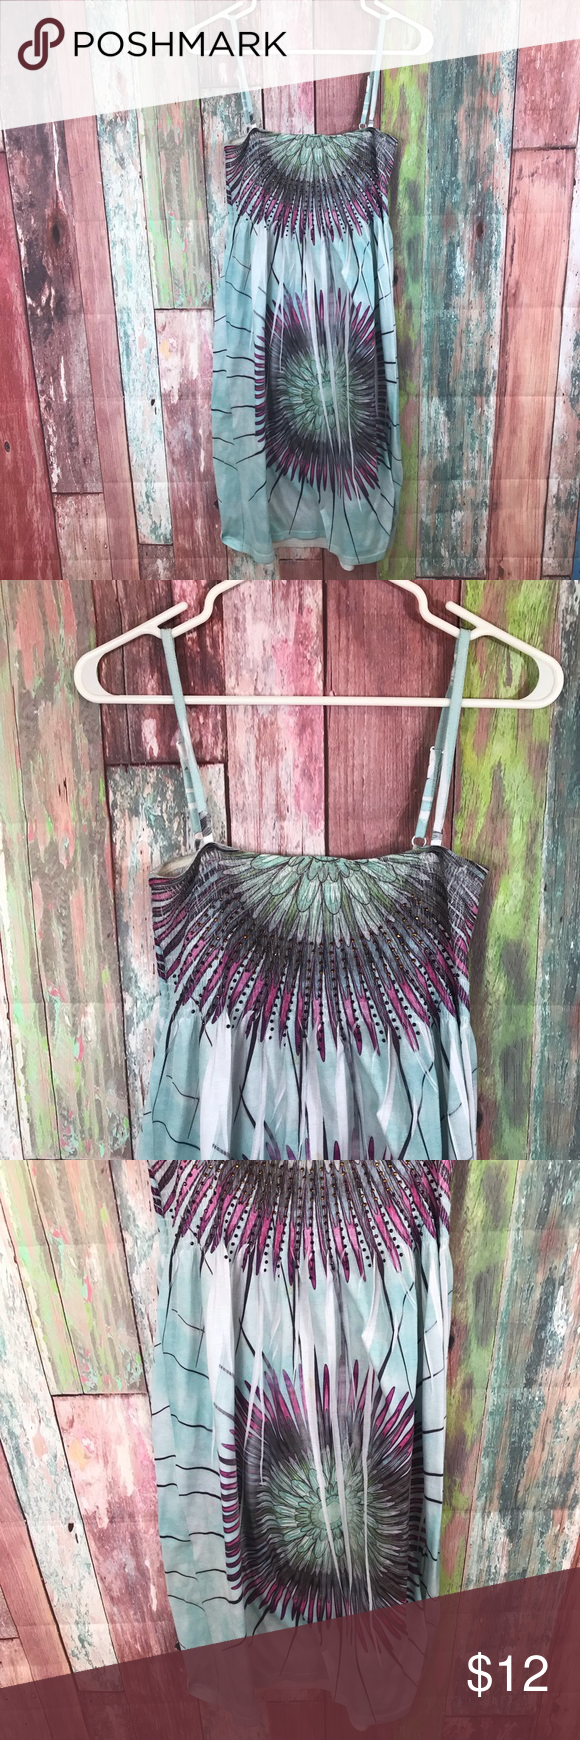 bc7e3898a9 Summer Dress or beach cover up Summer Dress or beach cover up Adjustable  straps In great condition India Boutique Dresses